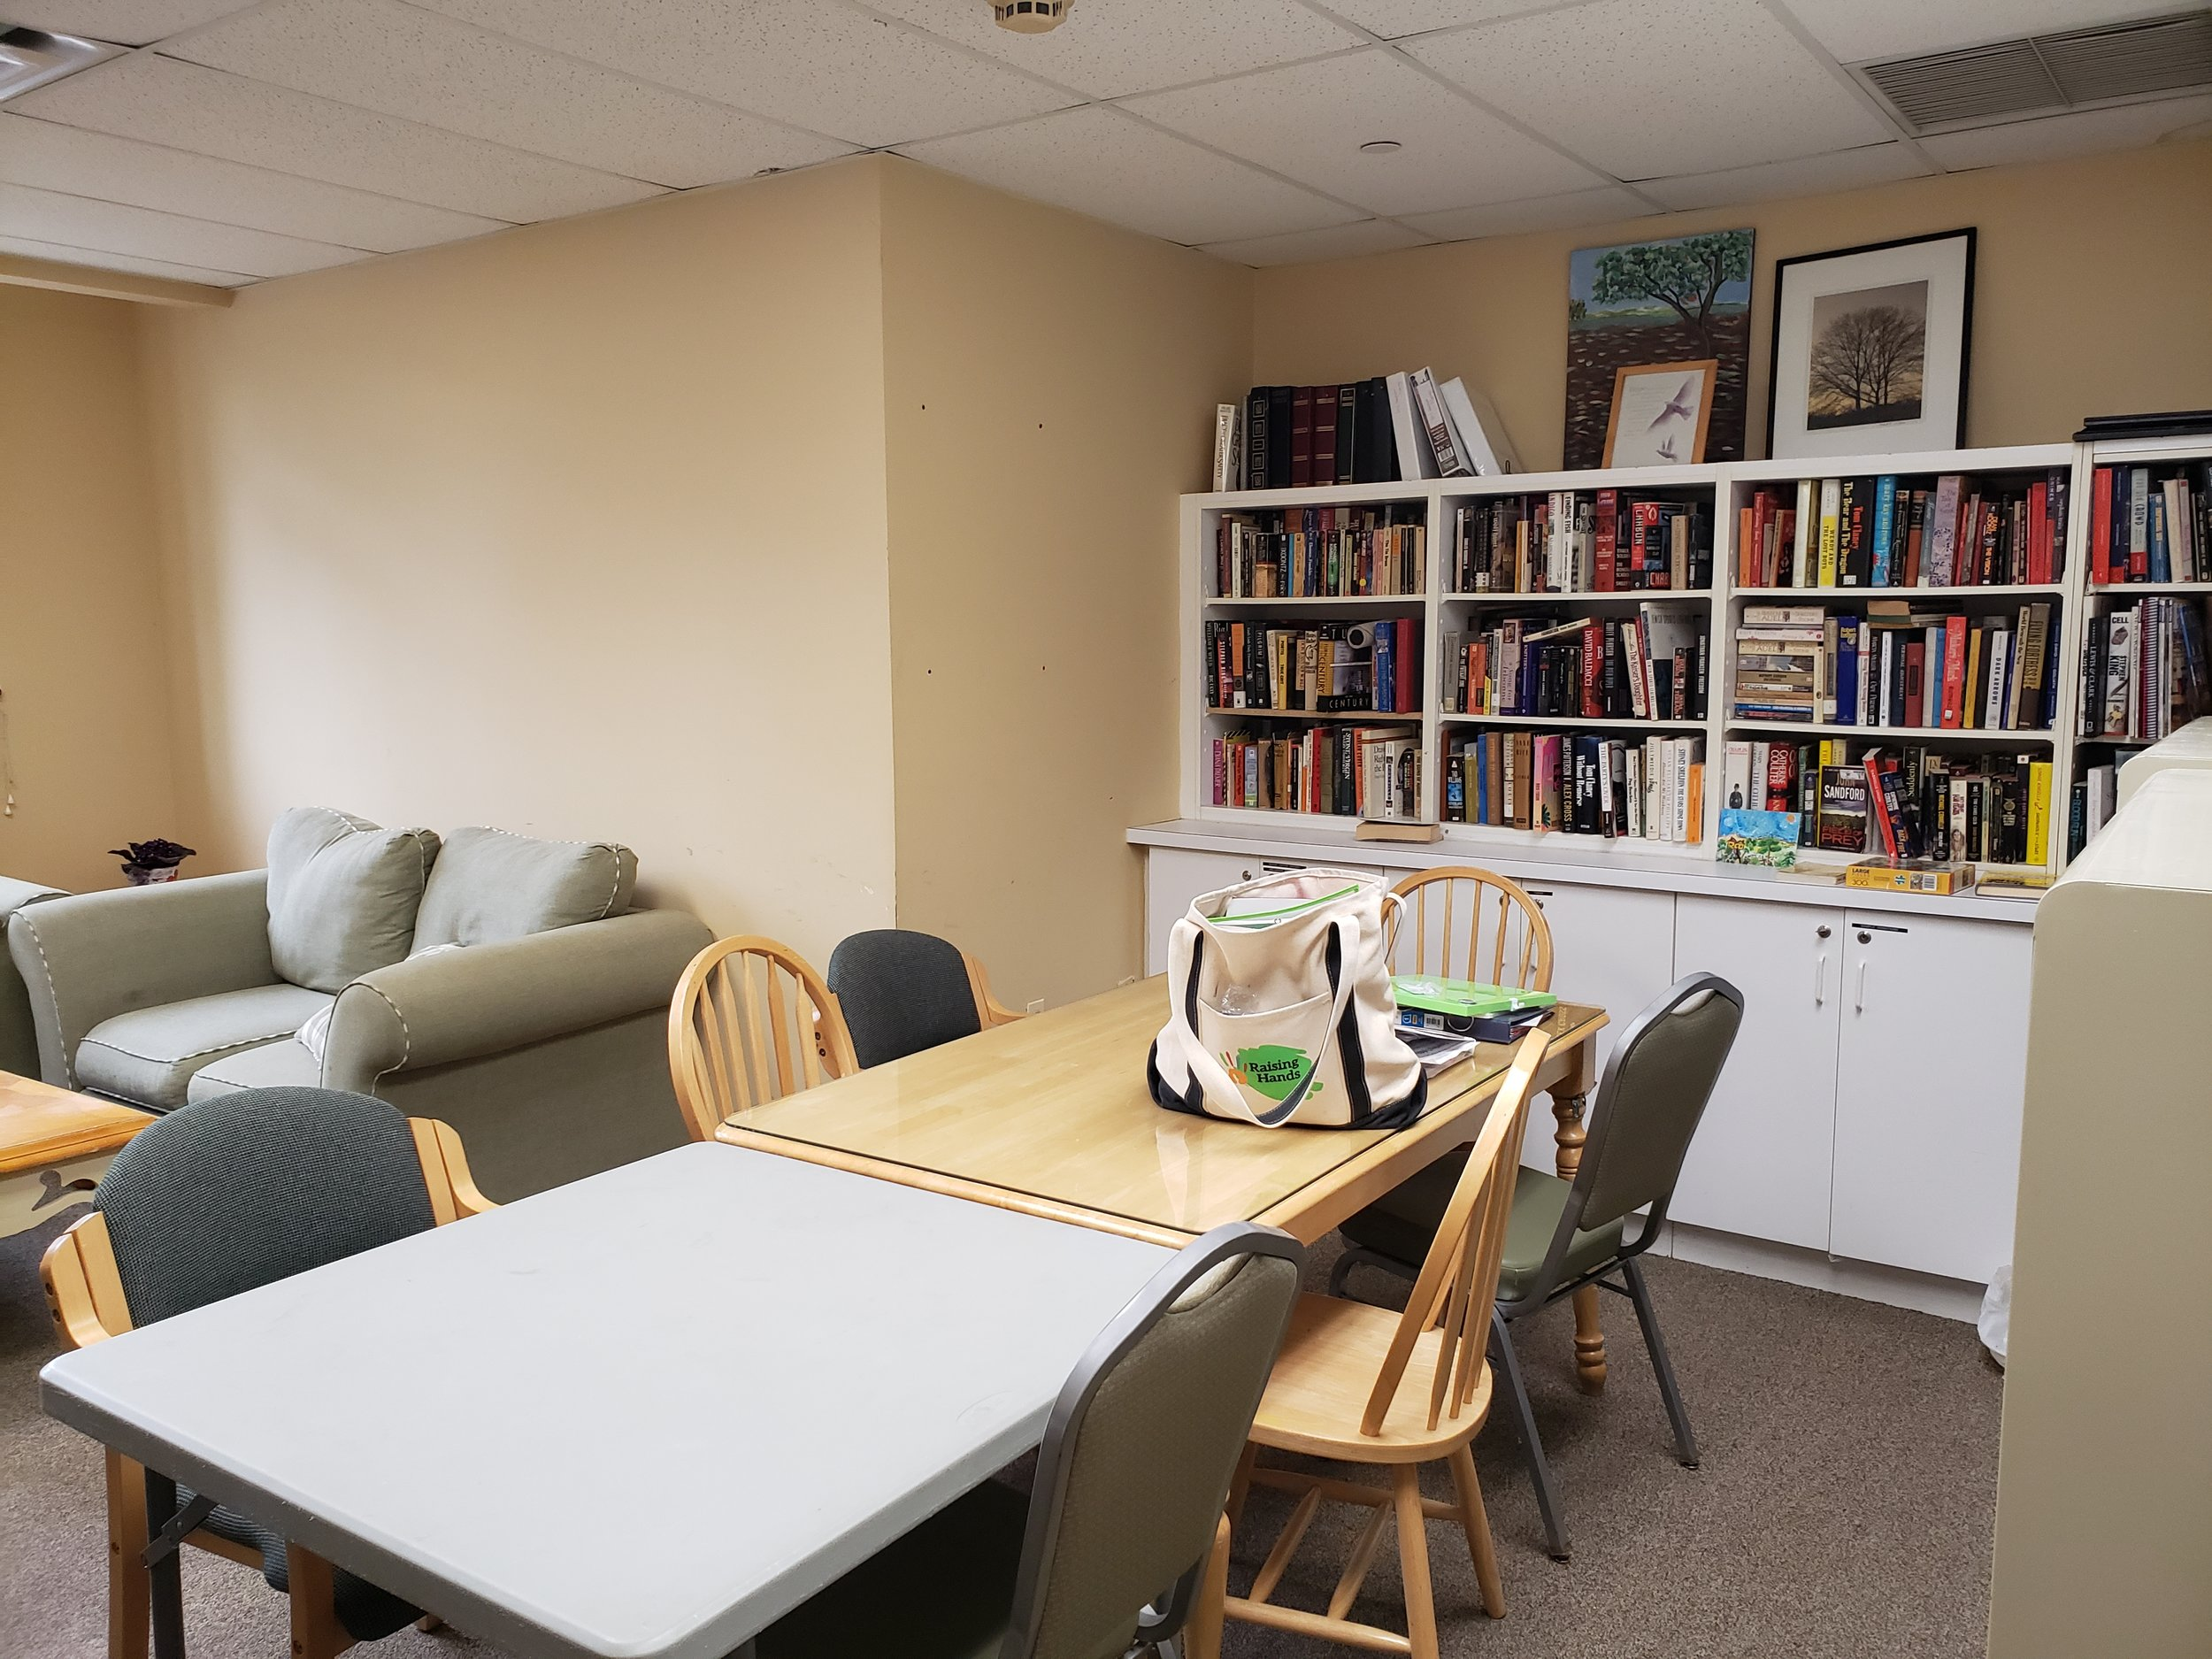 Before… - Our goal is to make this a space that is both tutoring friendly and accessible to the Highland Park Community.